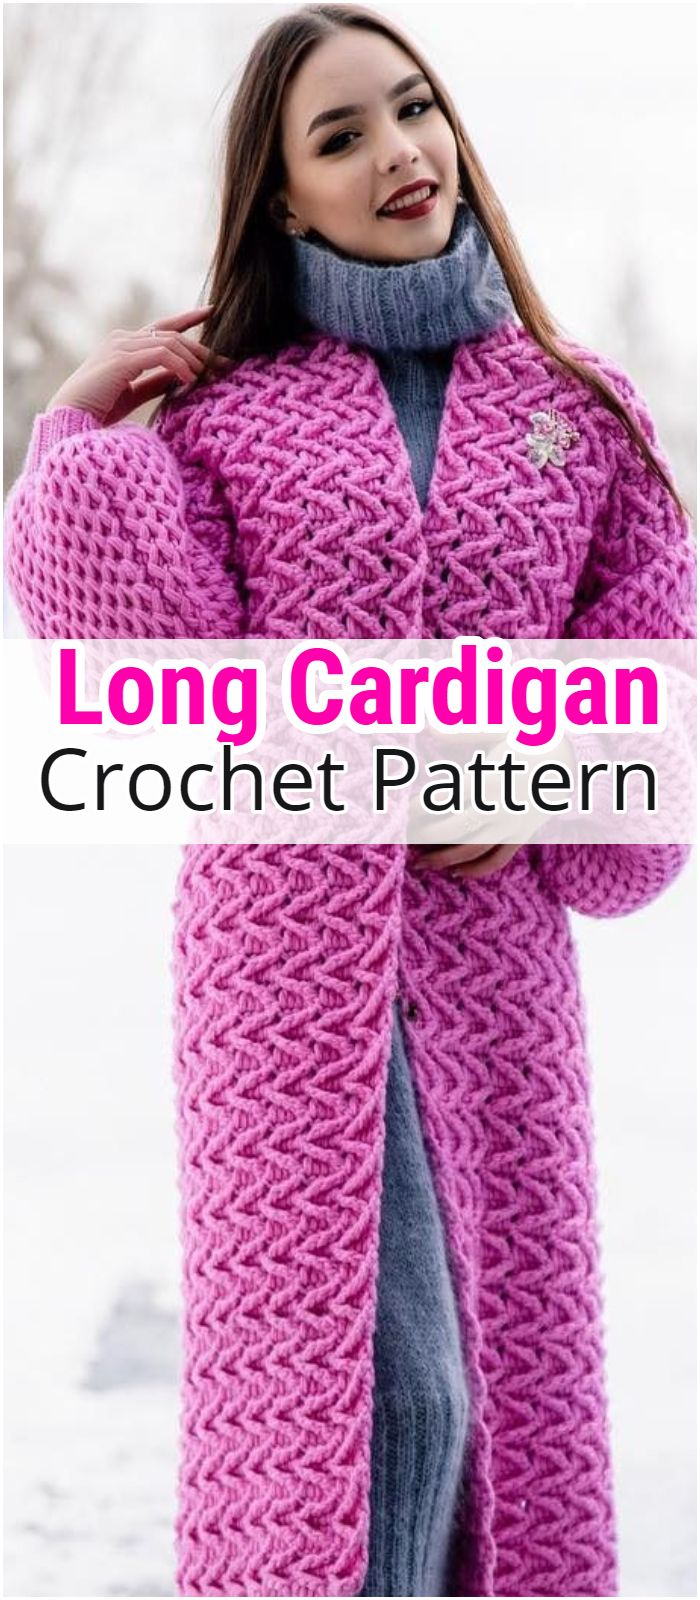 Long Cardigan Crochet Pattern